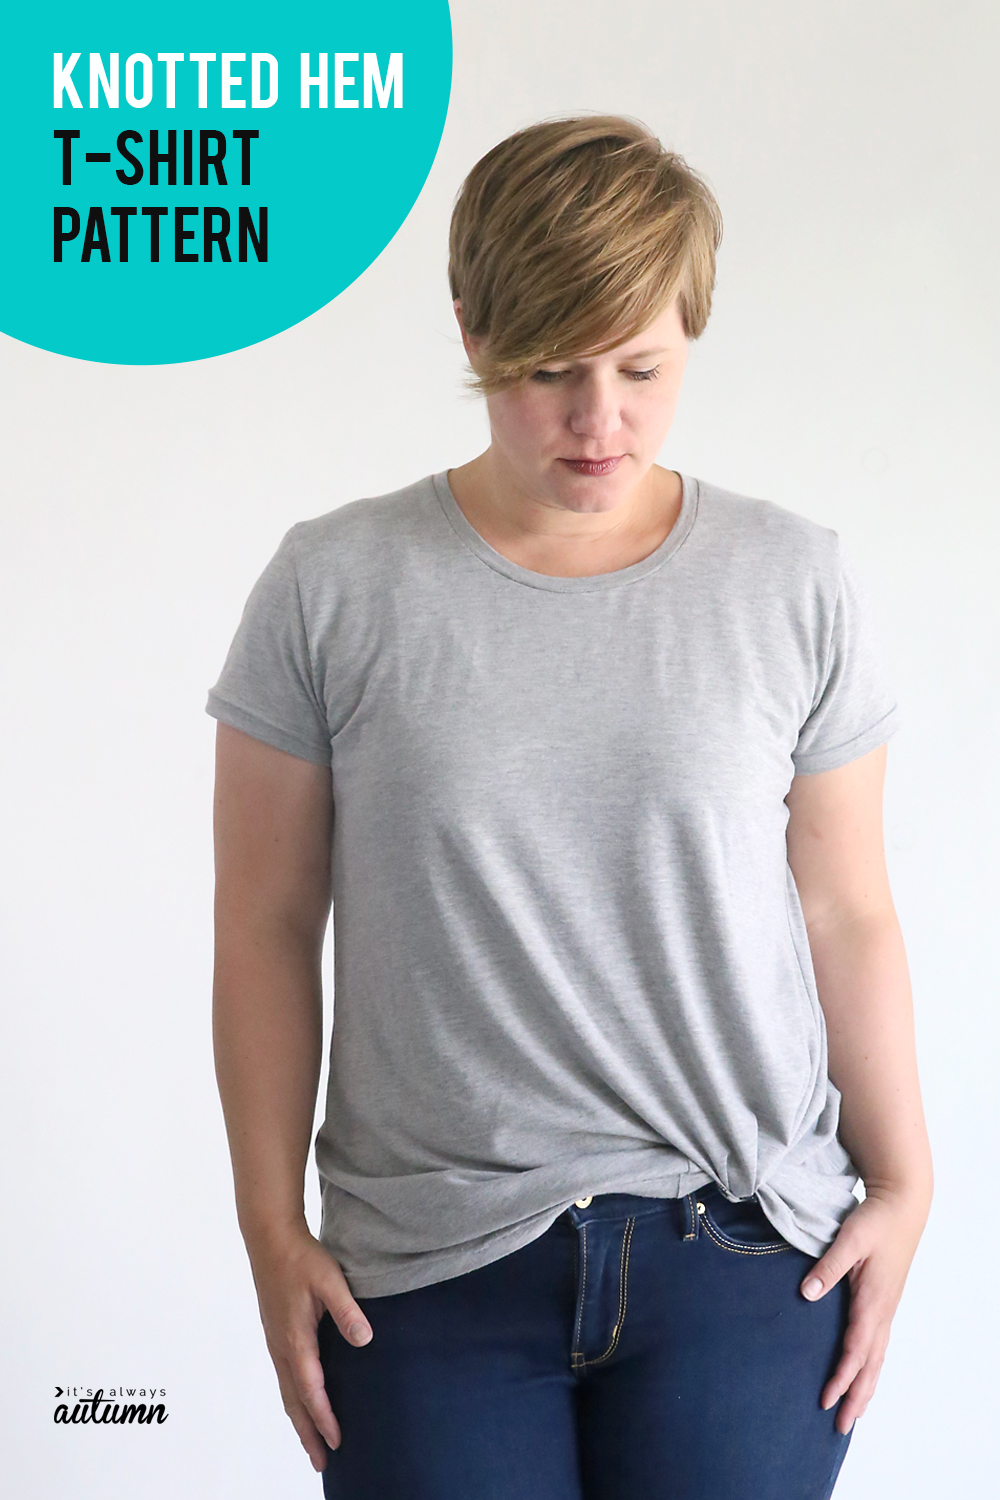 Click through to download the pattern for this cute knotted hem t-shirt pattern.